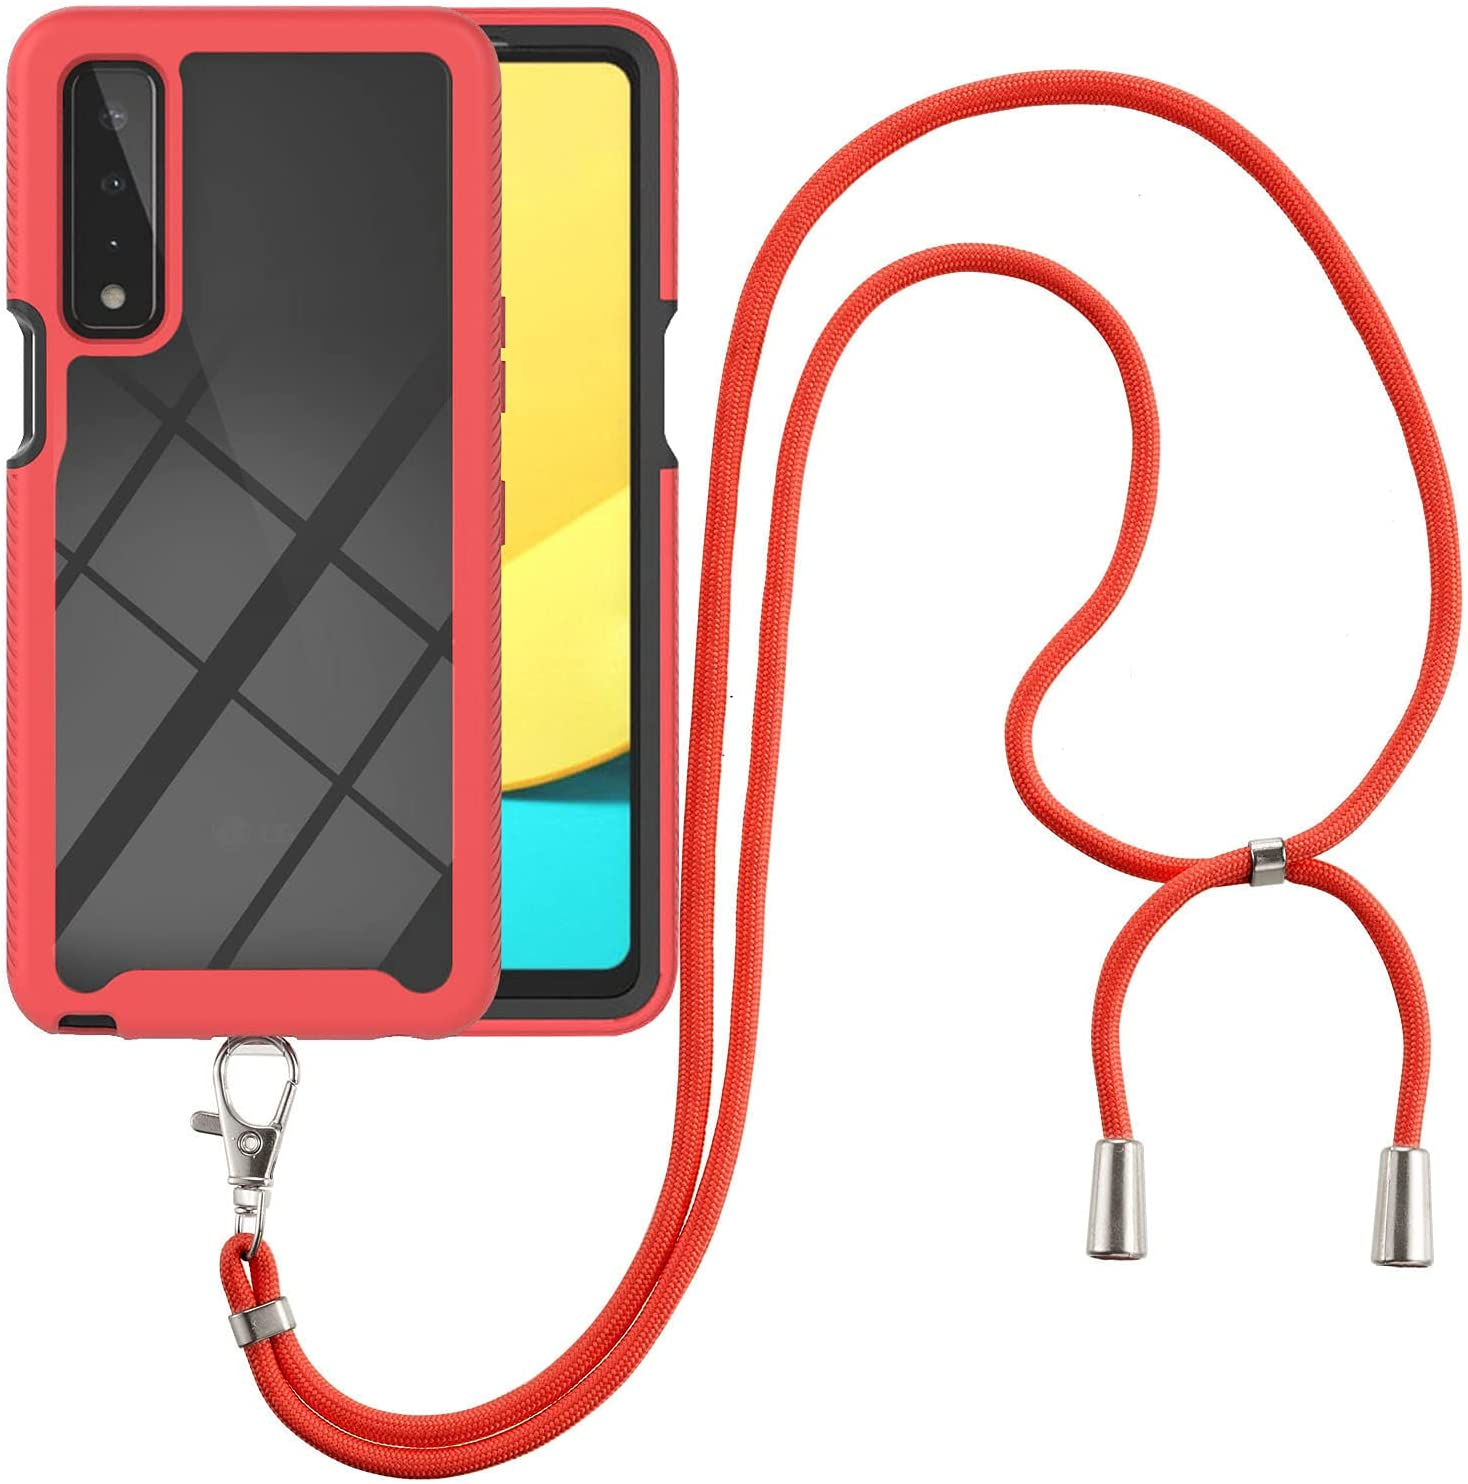 LG Stylo 7 5G Case, EabHulie Transparent Back No-Slip Bumper with Adjustable Crossbody Lanyard Strap Case, Shockproof Full Body Protection Cover for LG Stylo 7 5G Red